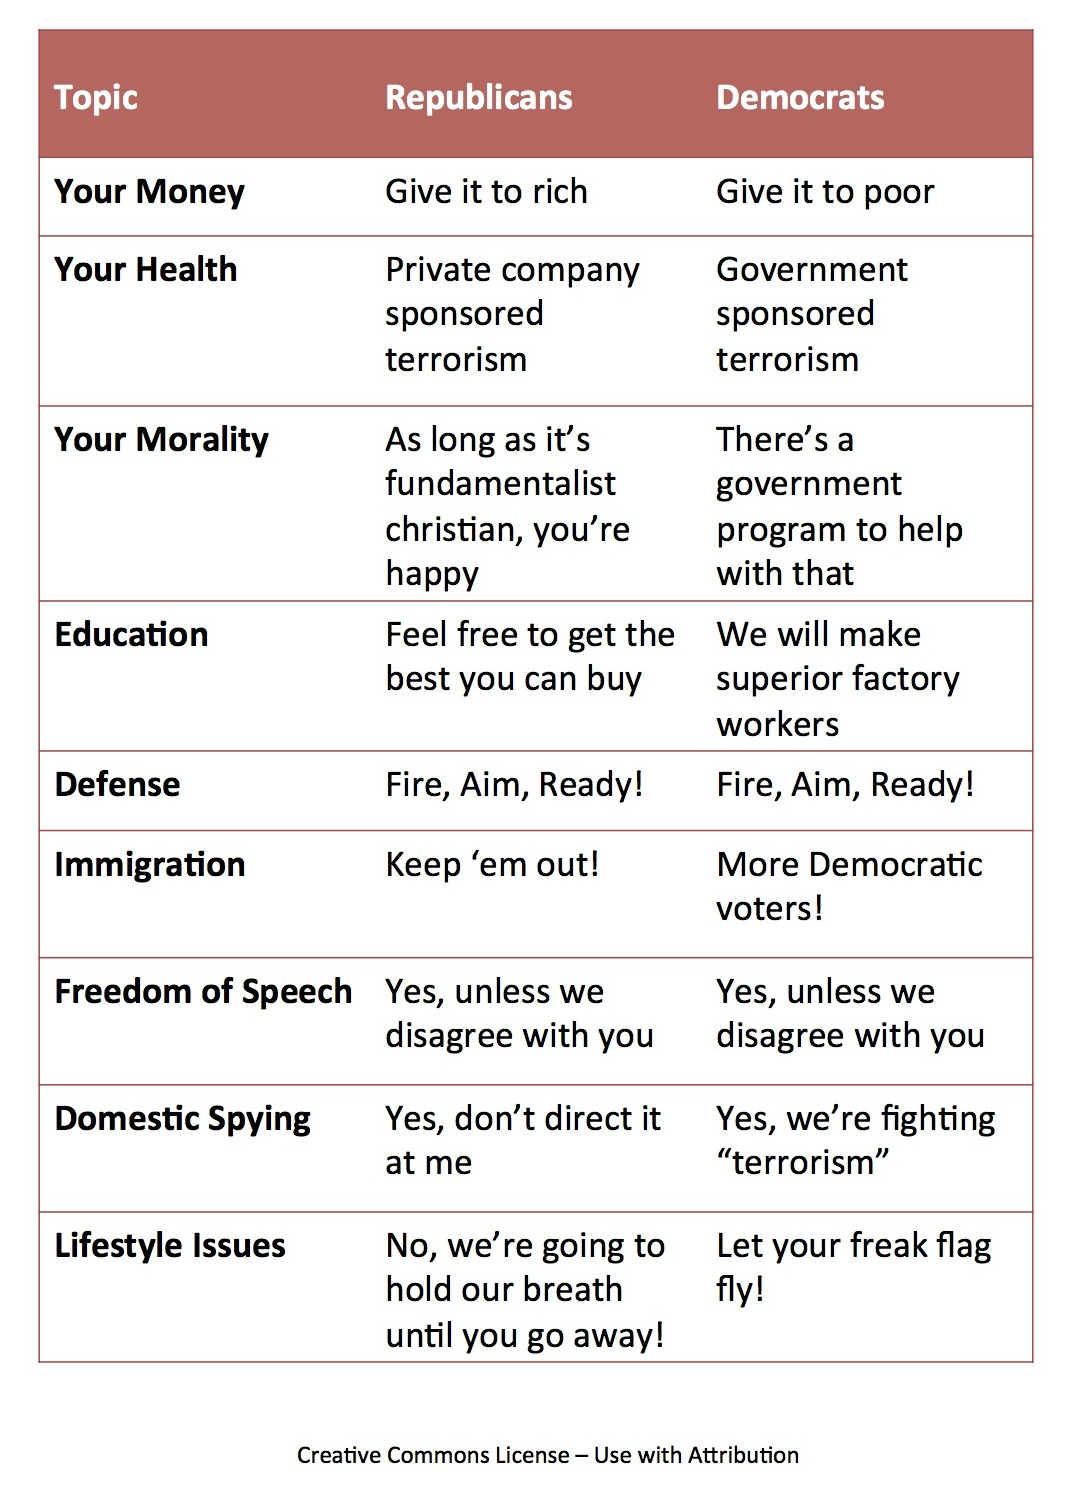 A handy guide to the party's views on popular issues in the 2012 election cycle.